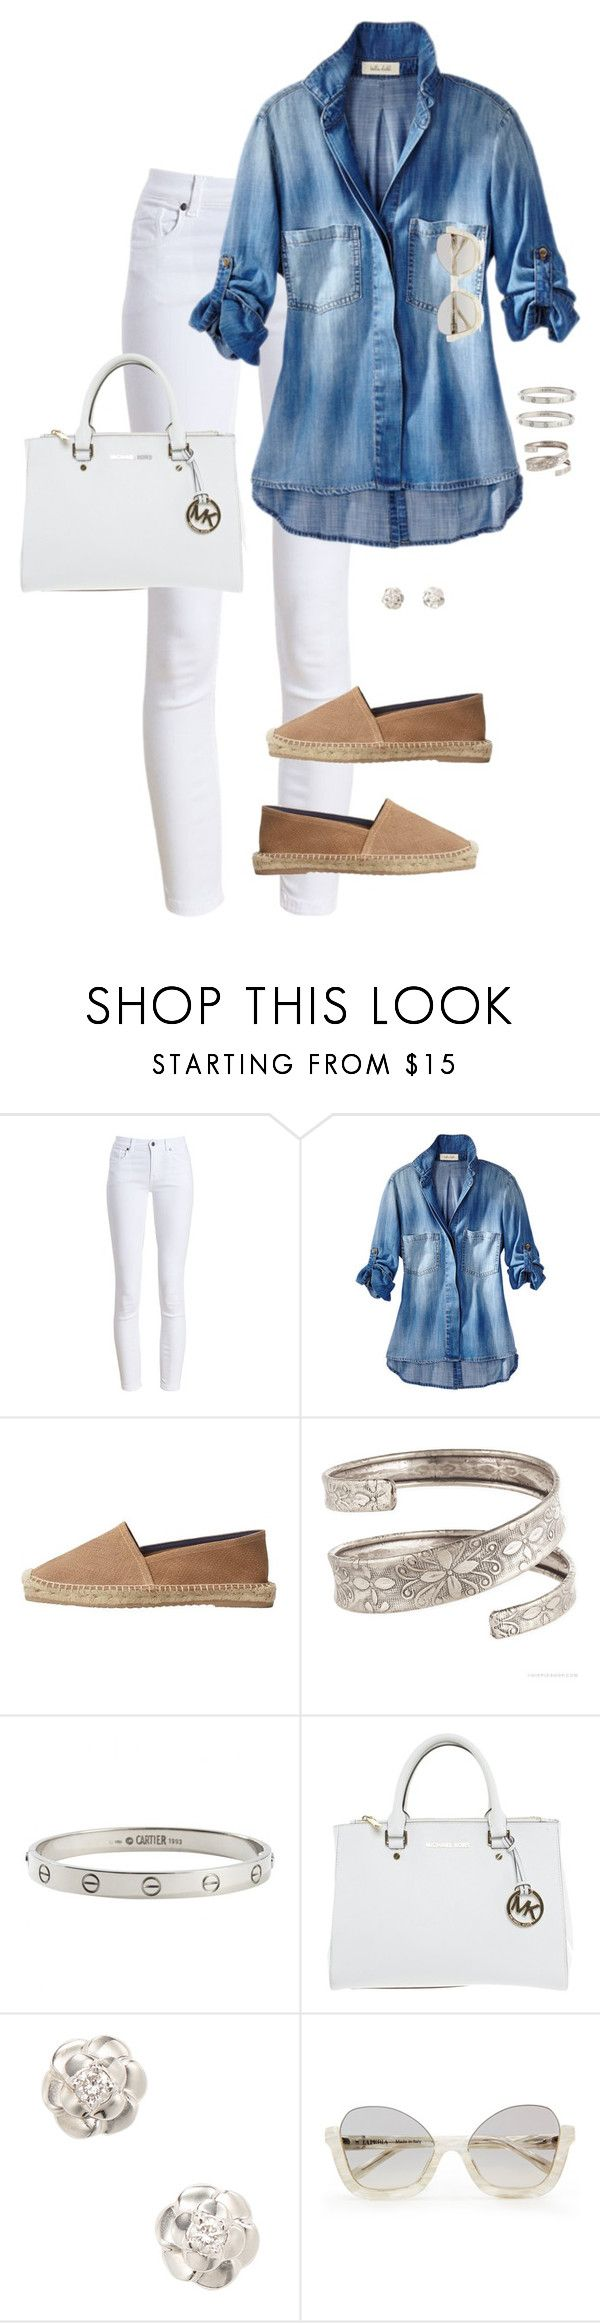 """Allow"" by ccoss on Polyvore featuring Barbour, MANGO, Cartier, Michael Kors and Chanel"